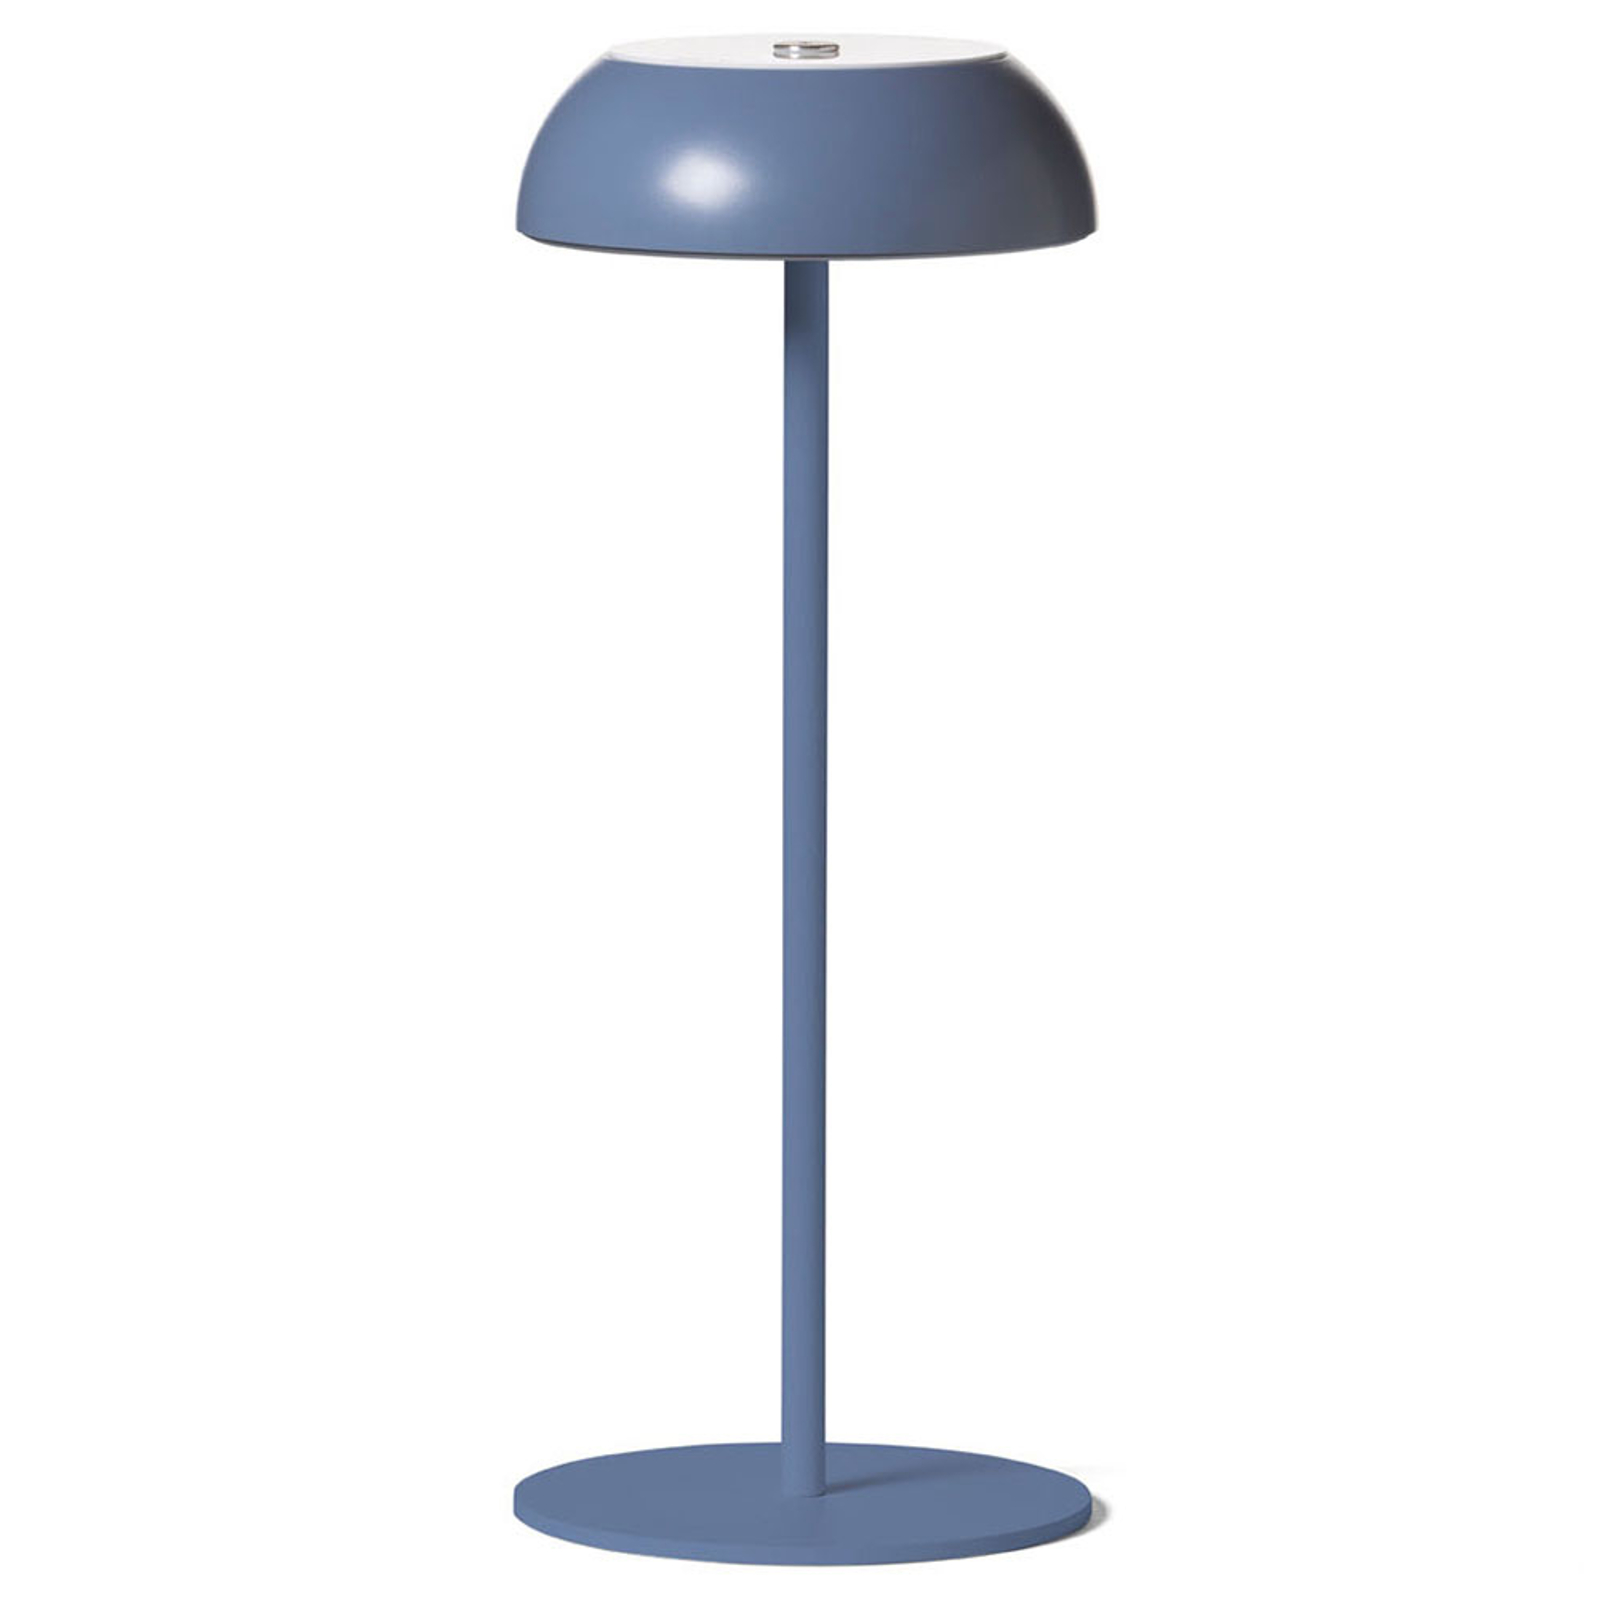 Axolight Float LED-Designer-Tischleuchte, blau